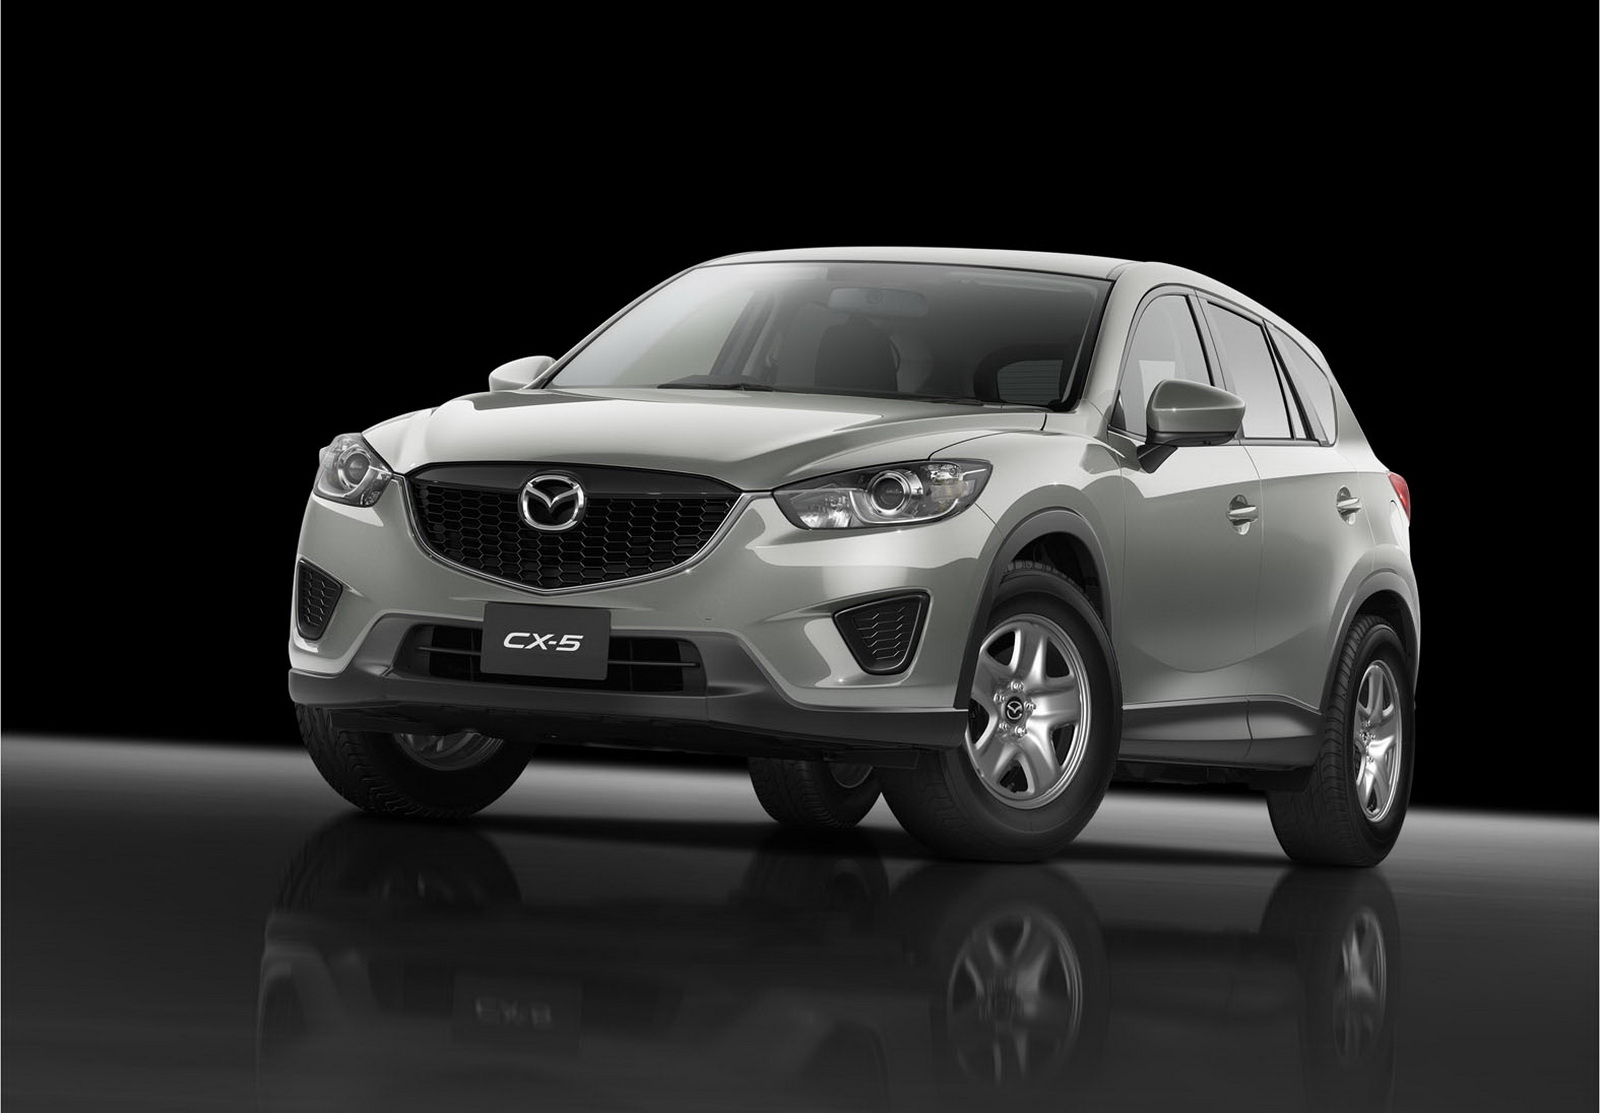 Image Result For Mazda Suv Lineup